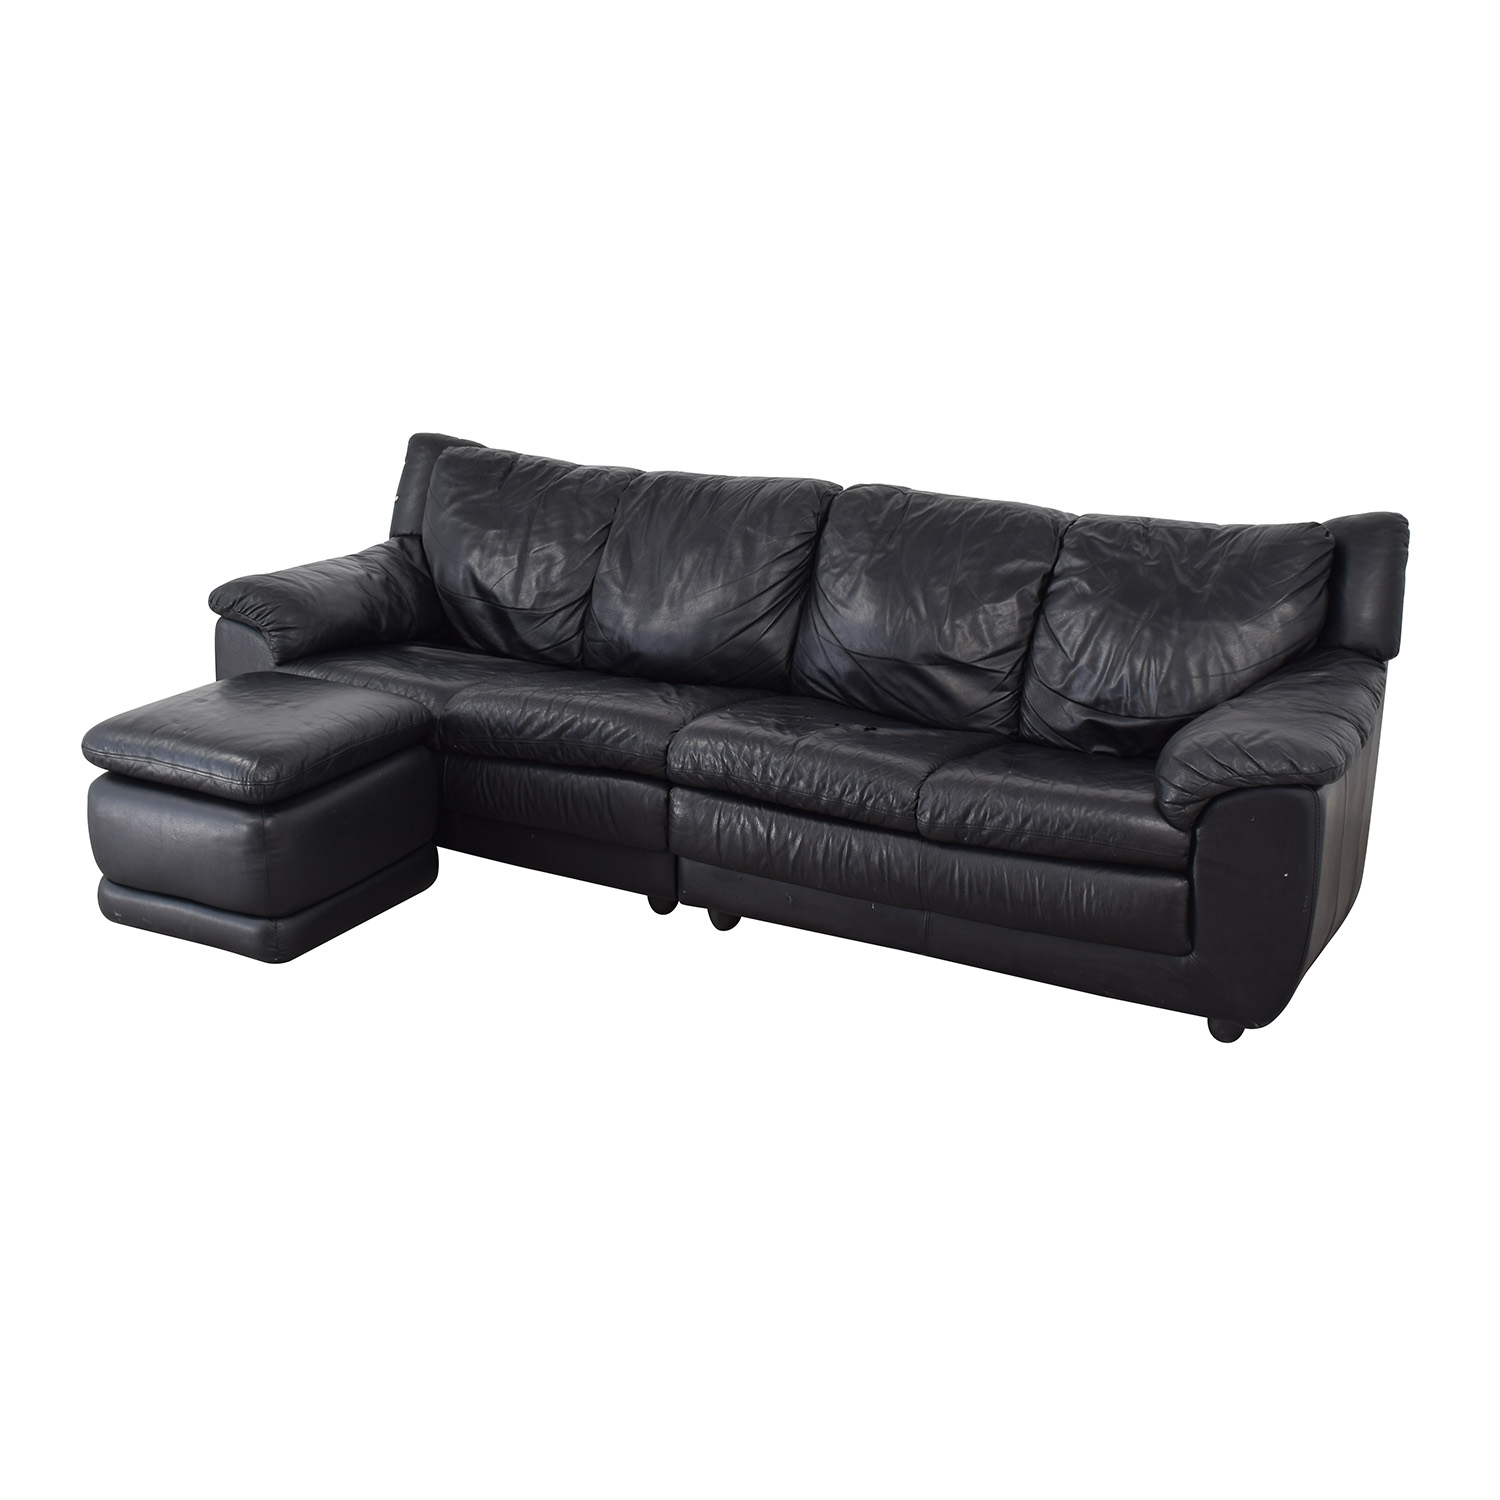 Nicoletti Home Nicoletti Home Black Four Cushion Couch with Ottoman coupon